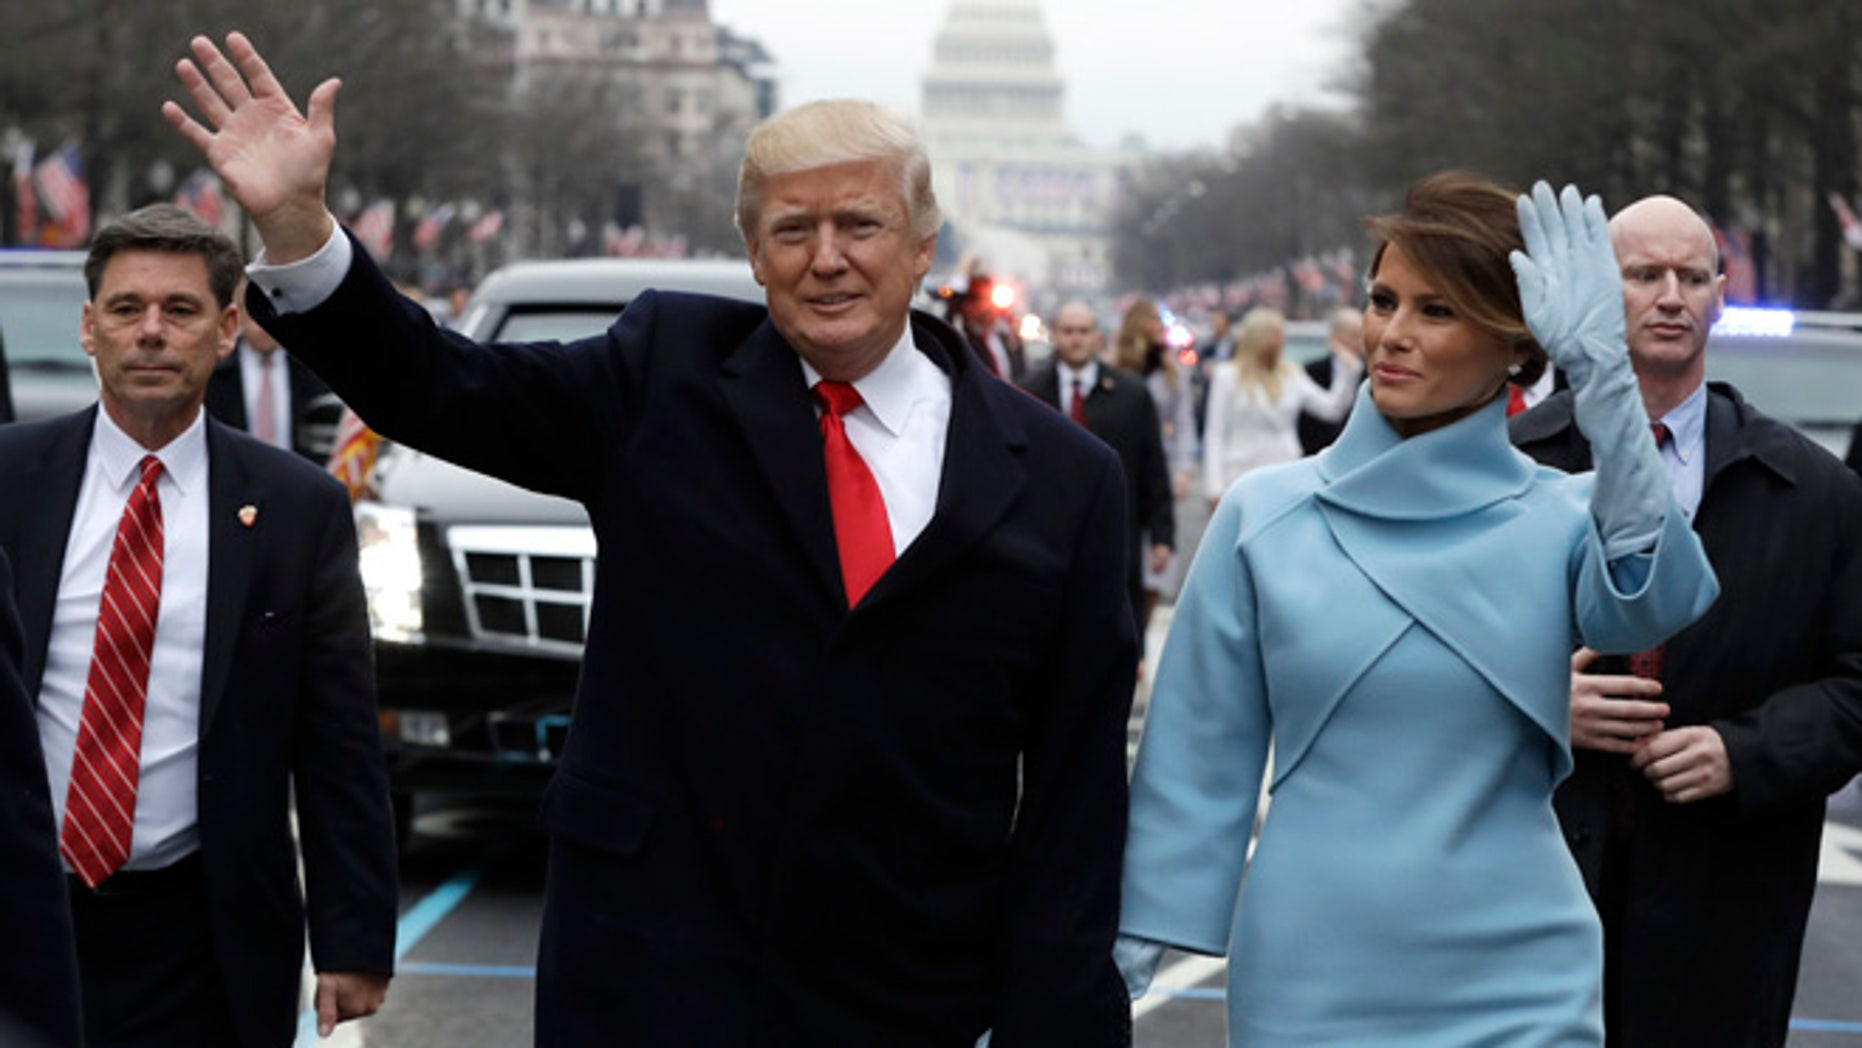 President Donald Trump waves as he walks with first lady Melania Trump during the inauguration parade on Pennsylvania Avenue in Washington, Friday, Jan. 20, 2016. (AP Photo/Evan Vucci, Pool)